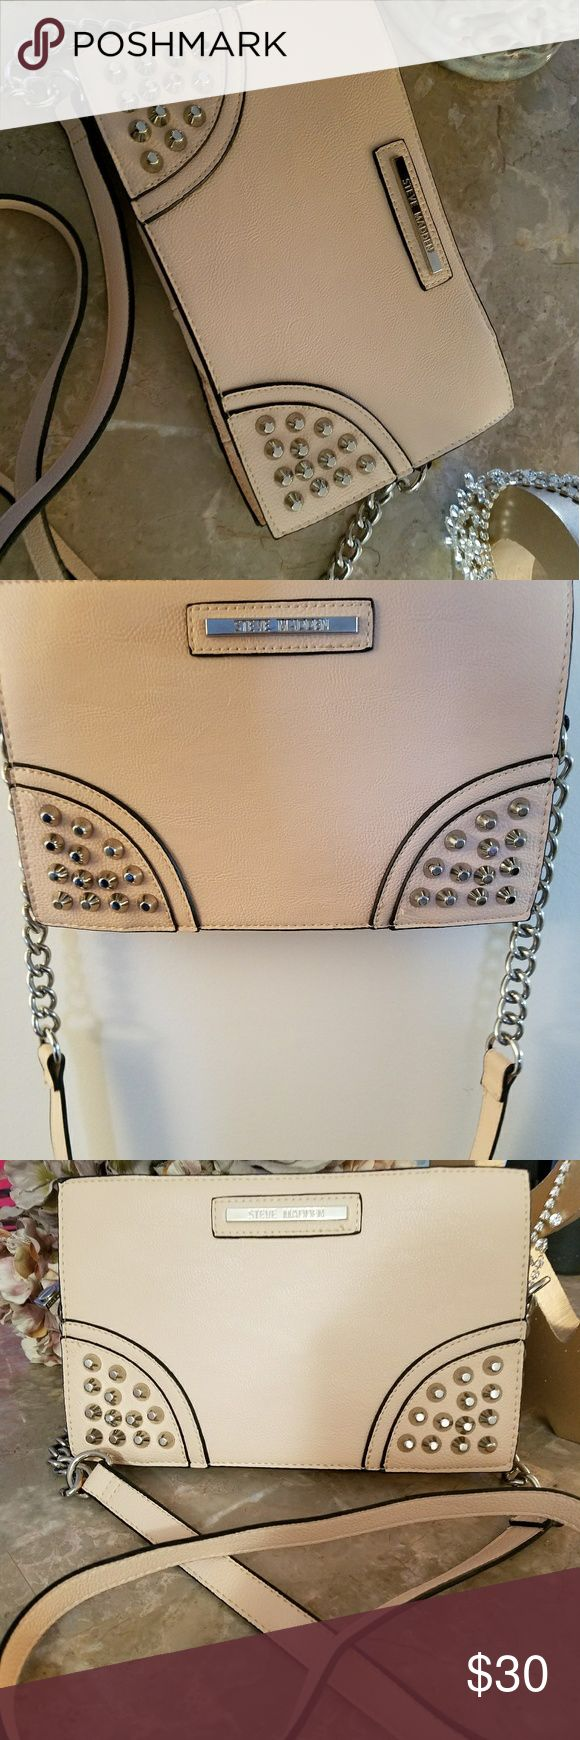 NEW  STEVE MADDEN SADDLE BAG Very cute. Has a zip up pocket inside. Light peach color small but has plenty of space for a phone,wallet,makeup.....etc. Steve Madden Bags